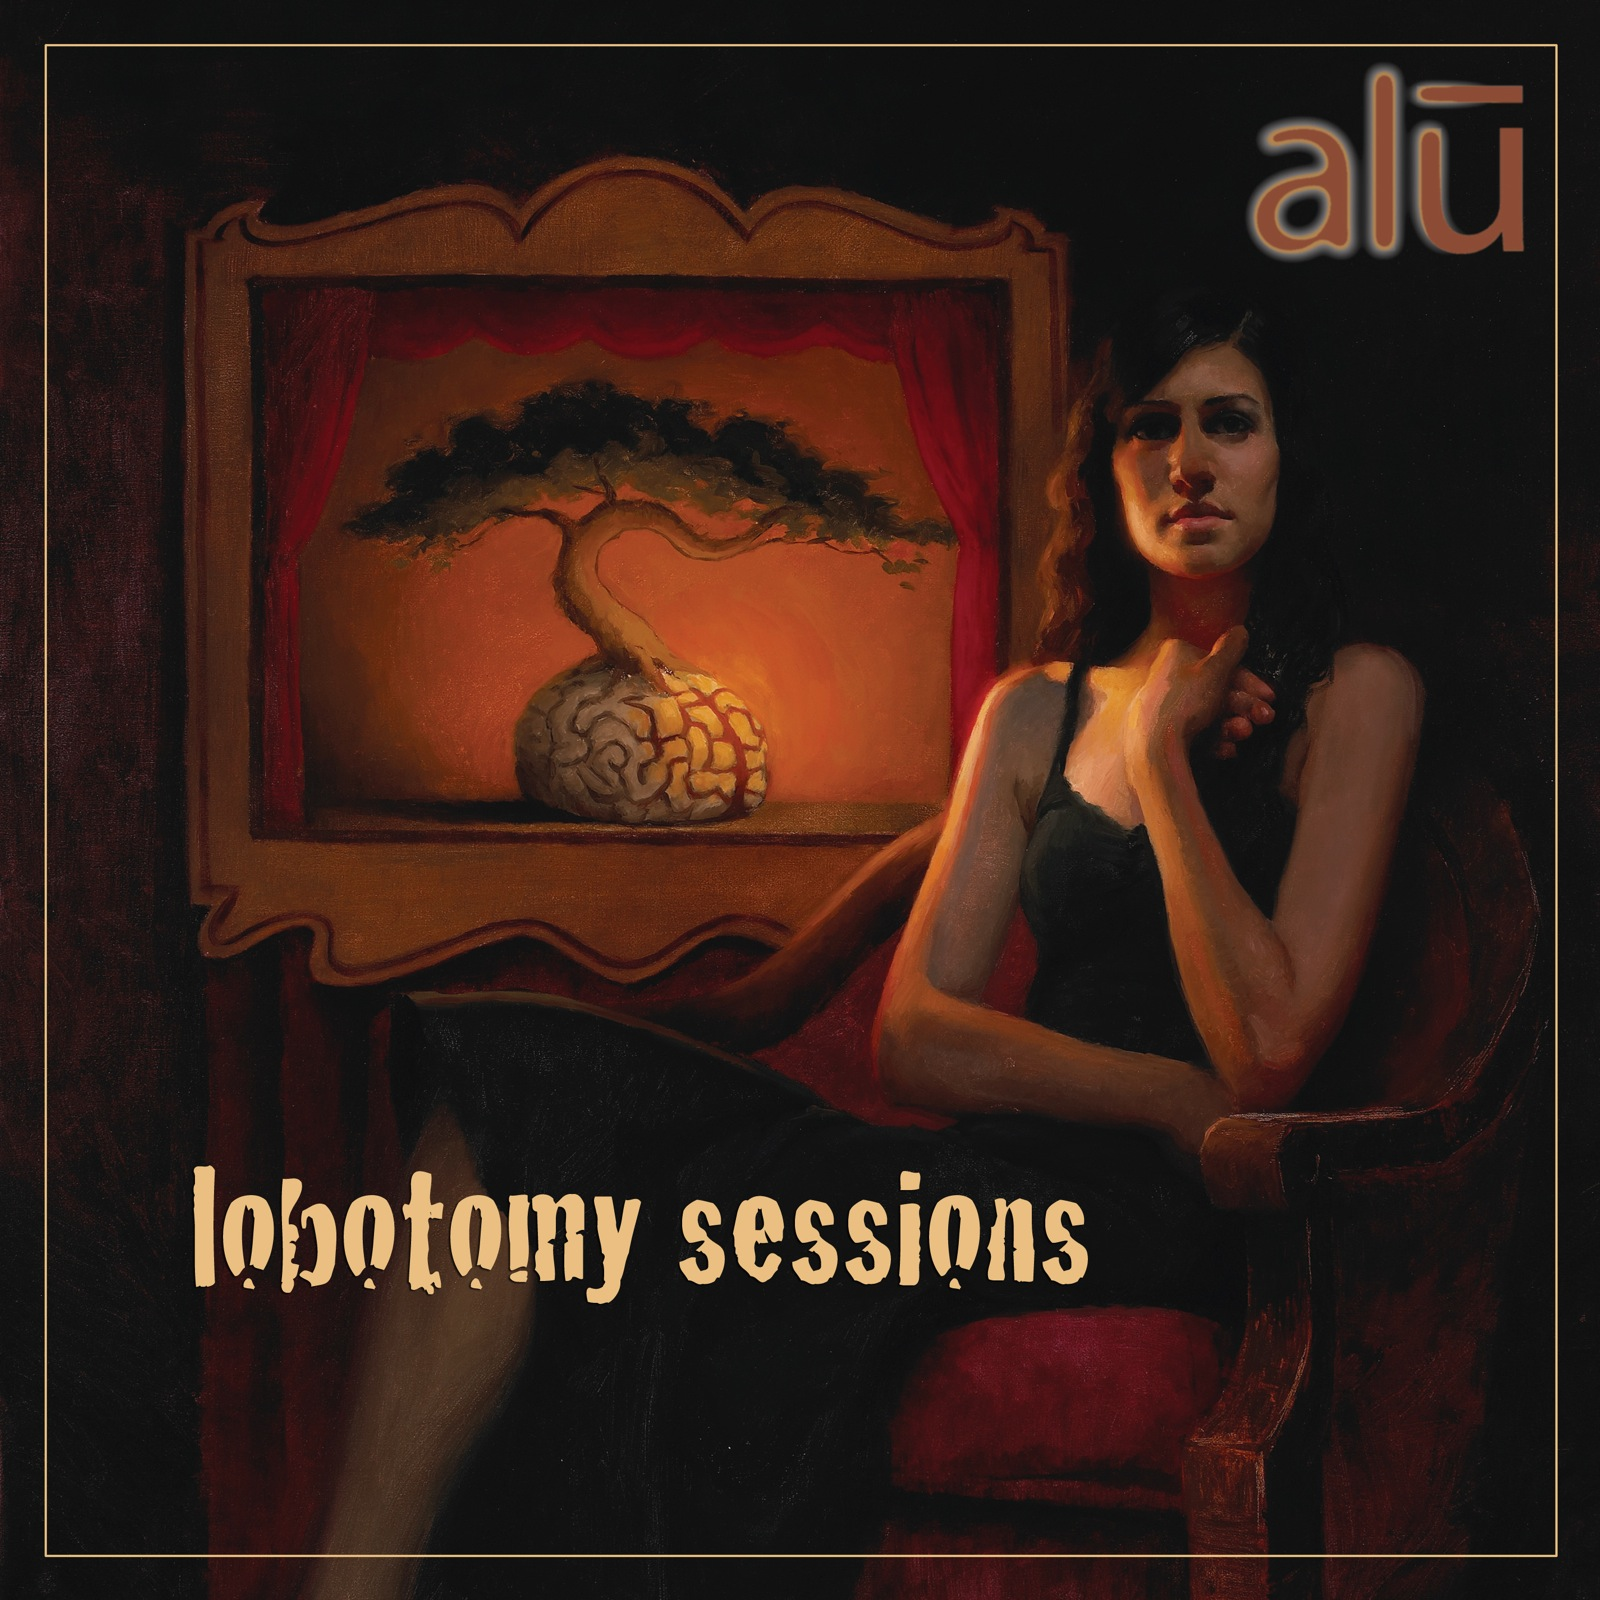 02.alu-Lobotomy Sessions album cover.jpg